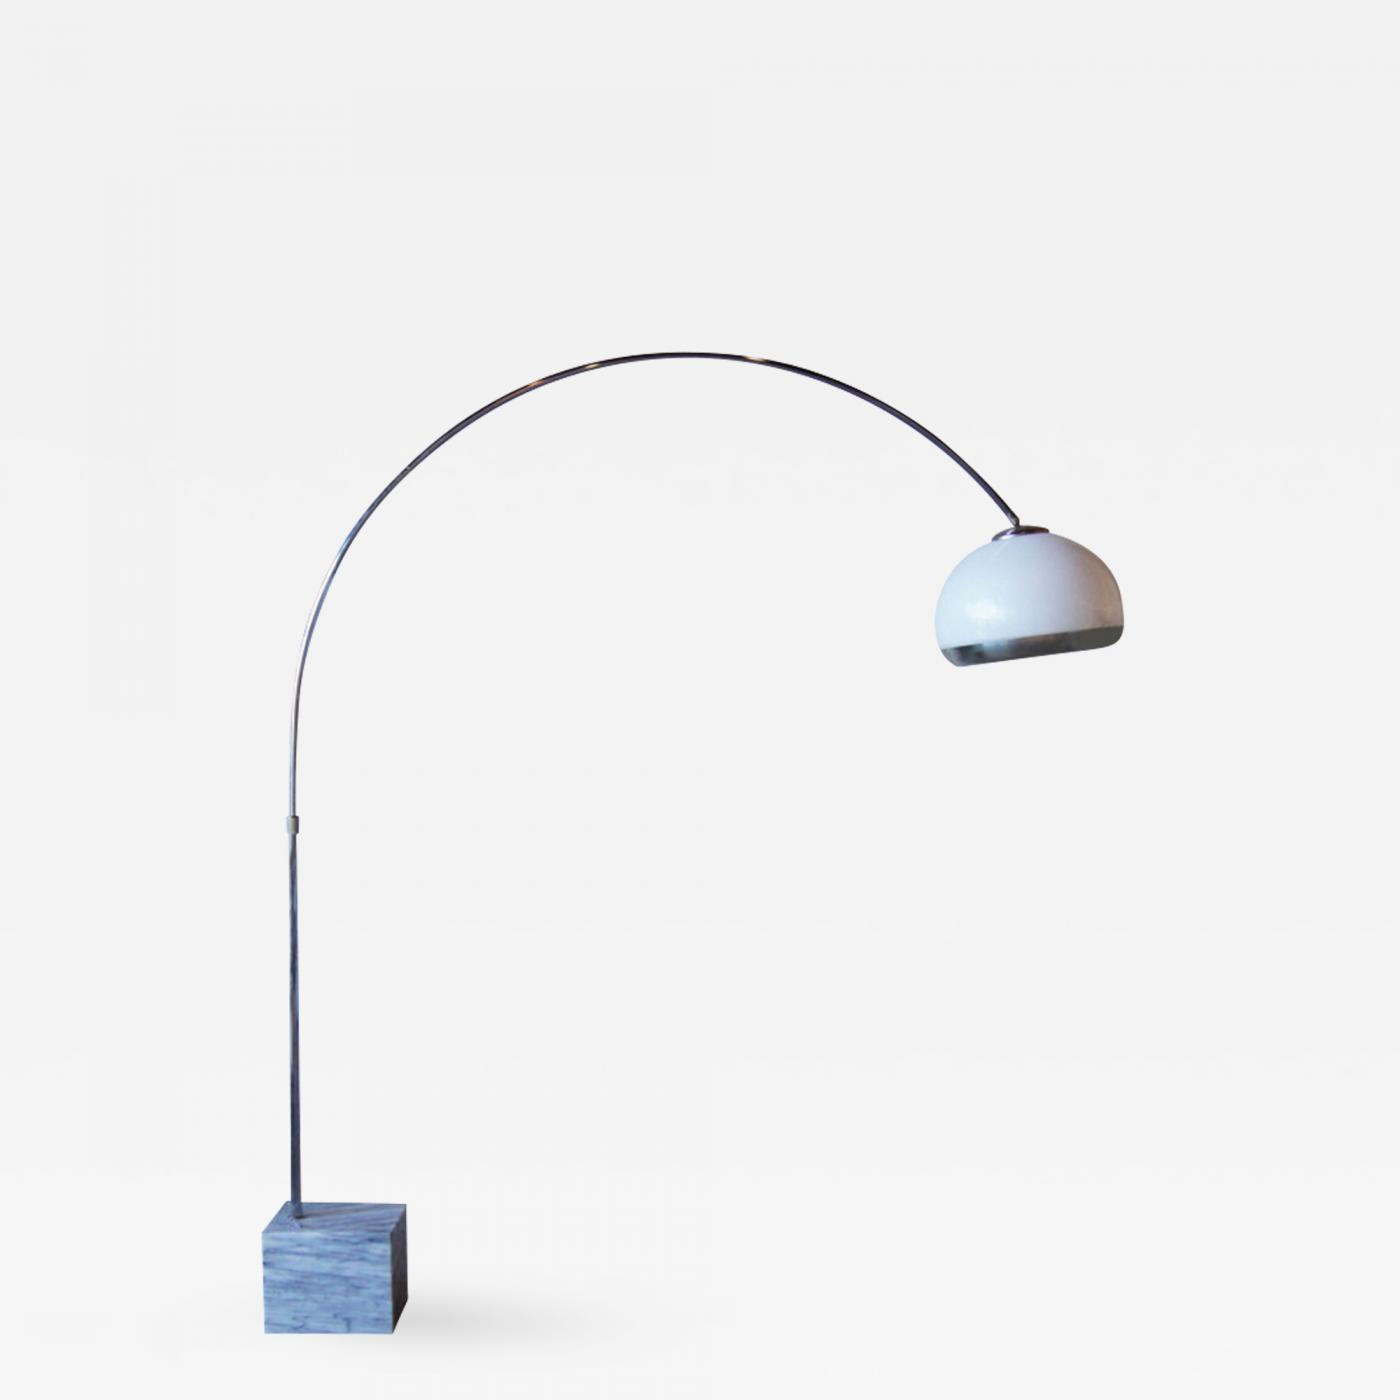 Lampe Arco Guzzini Harvey Guzzini Iguzzini Harvey Guzzini Arco Floor Lamp For Laurel Lighting Company